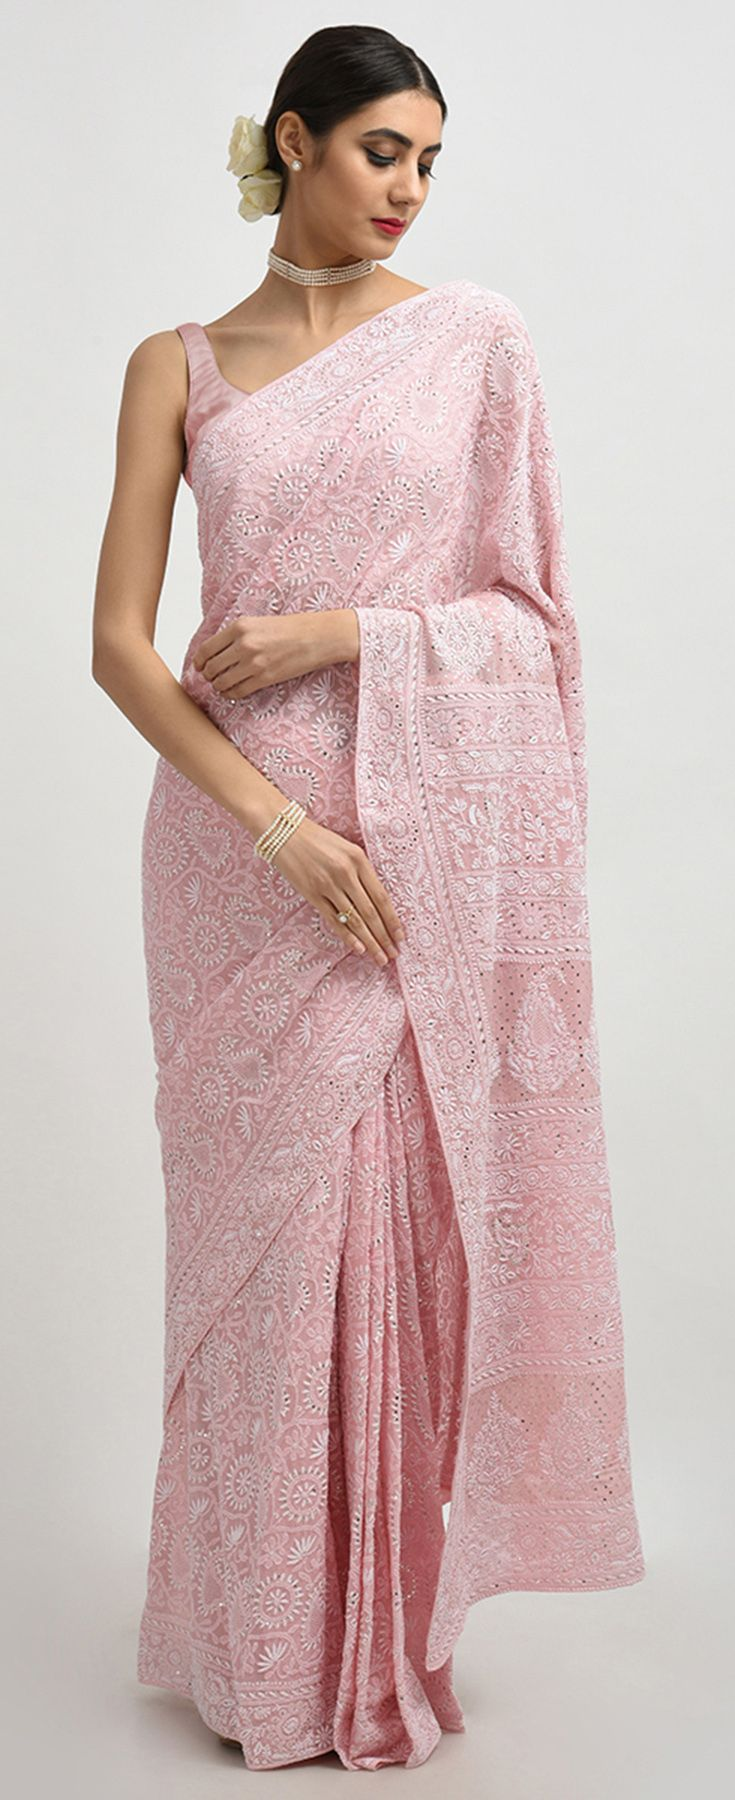 603c945509 Dusty Rose Intricate Chikankari And Kamdani Pure Georgette Saree ...